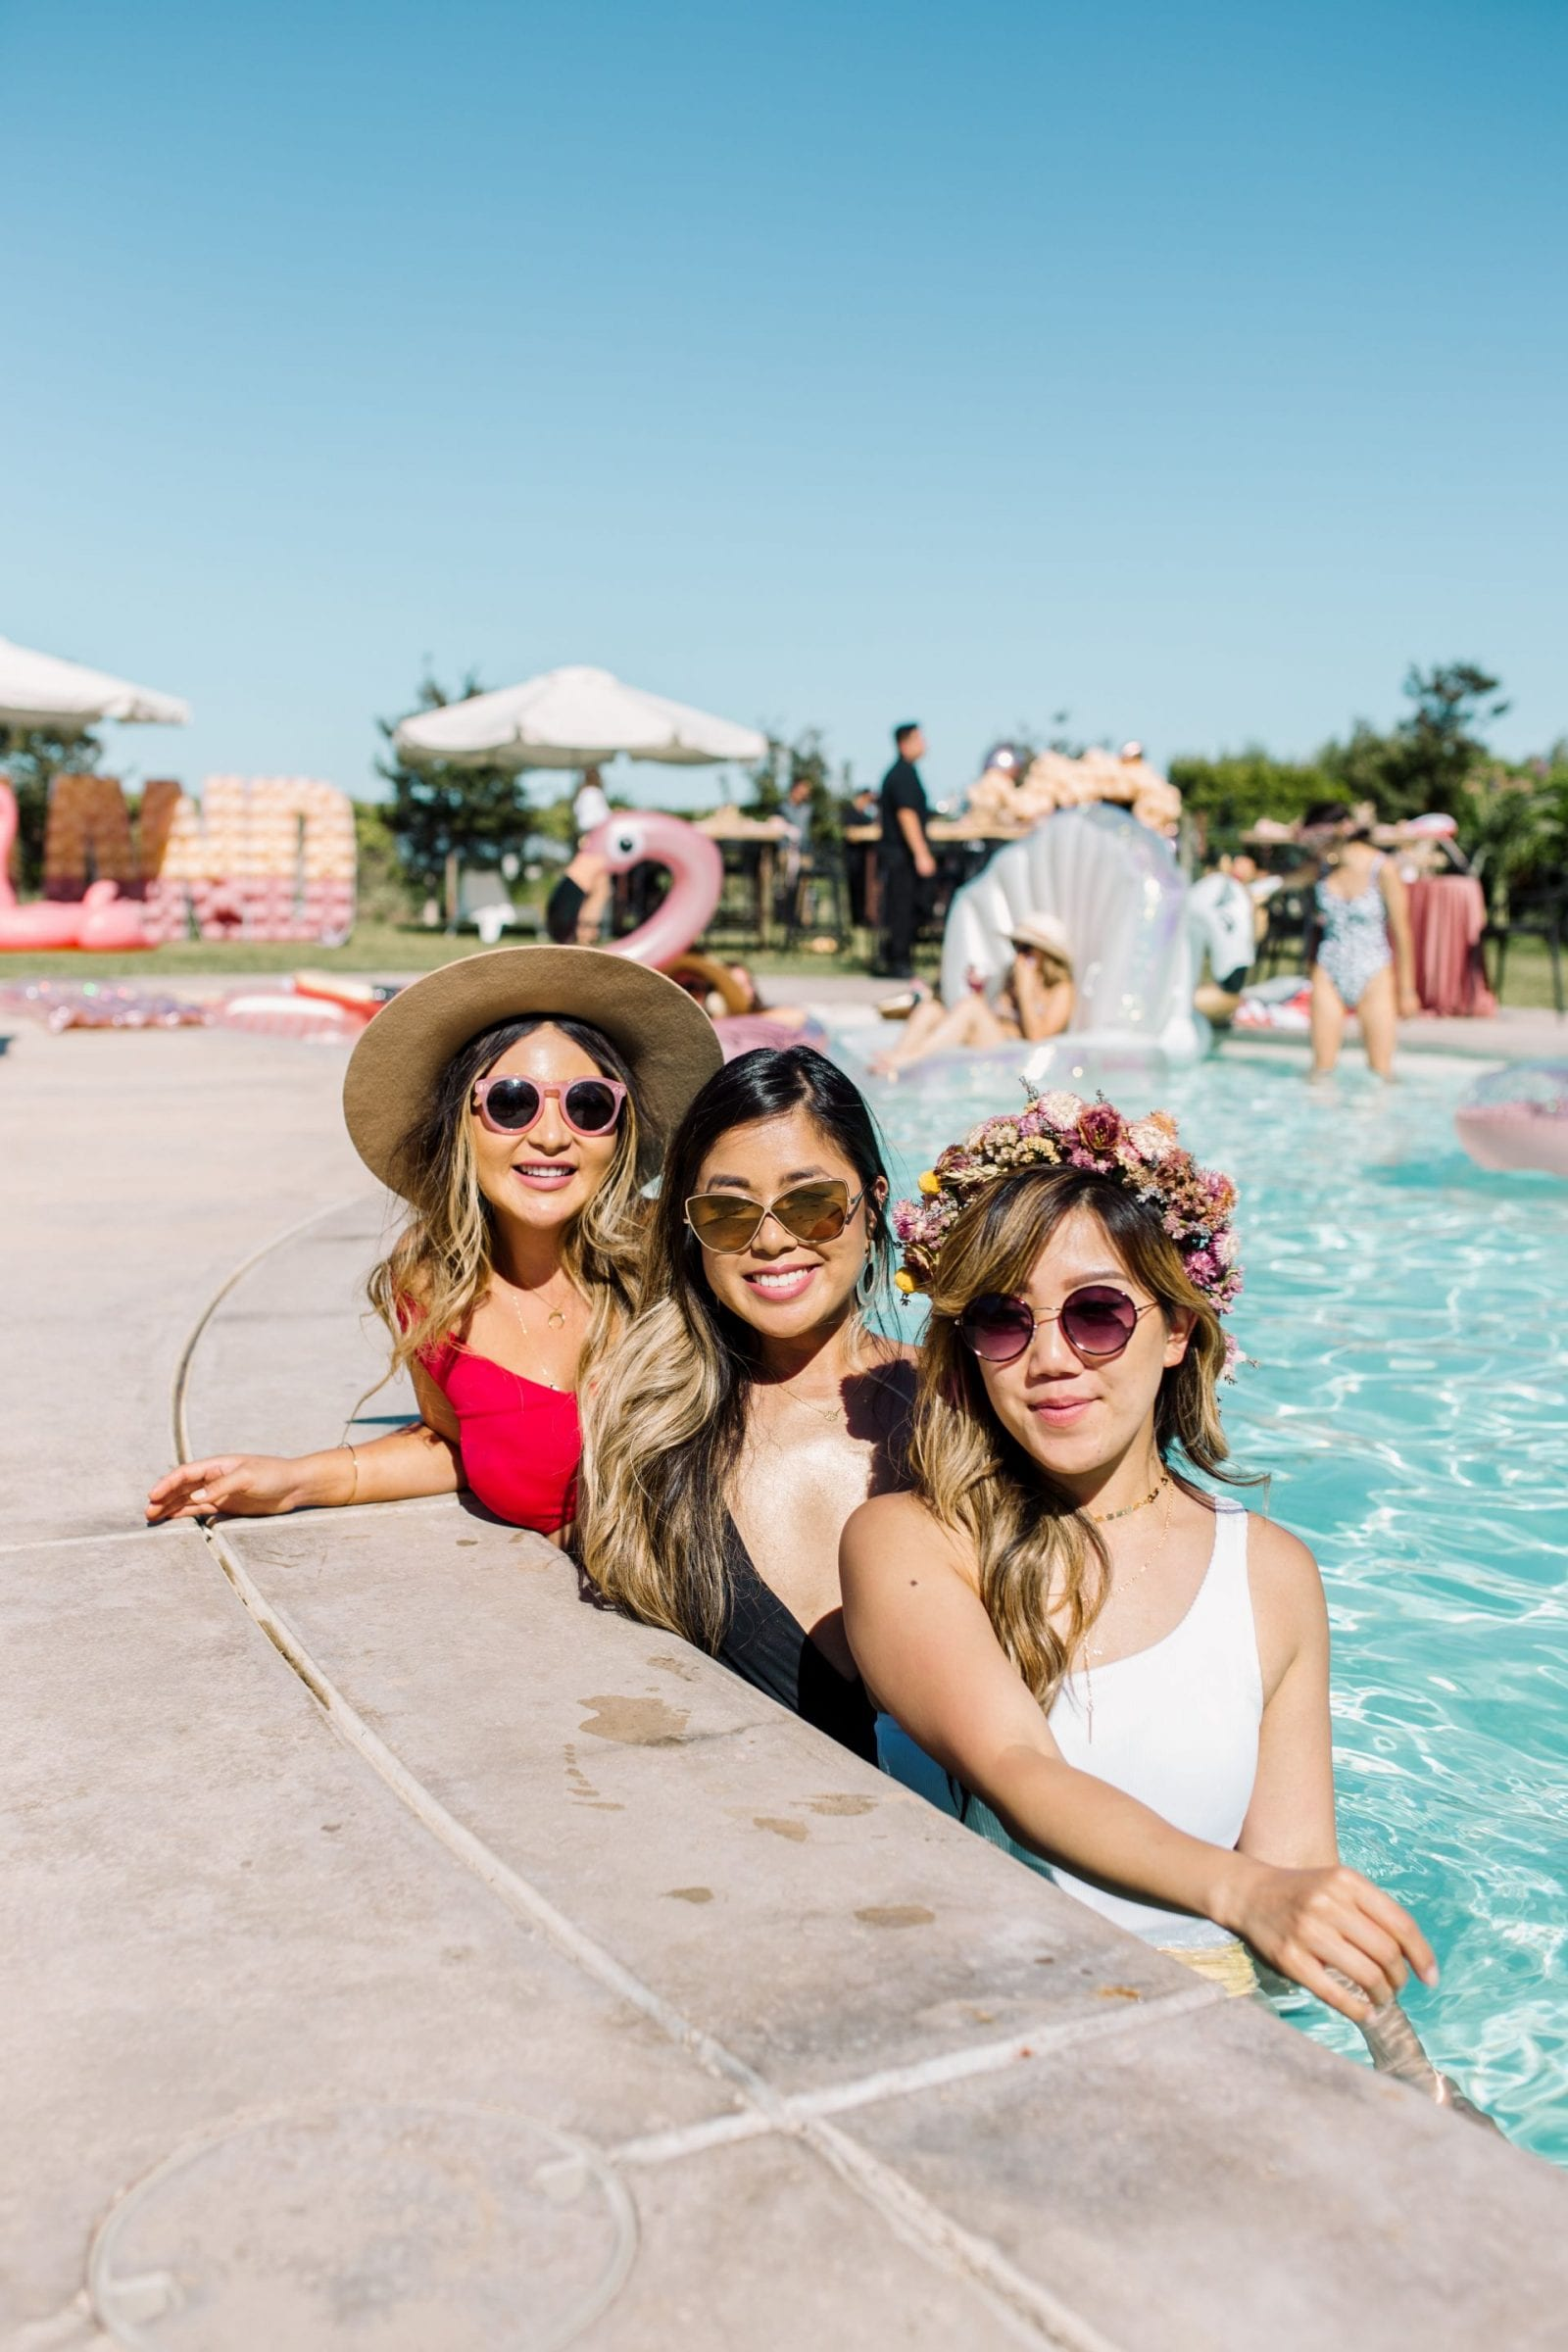 Park Winters Summerland 2019 | Summer Pool Party Inspiration | Fashion Blogger | Swimsuit | SarahMichiko.com